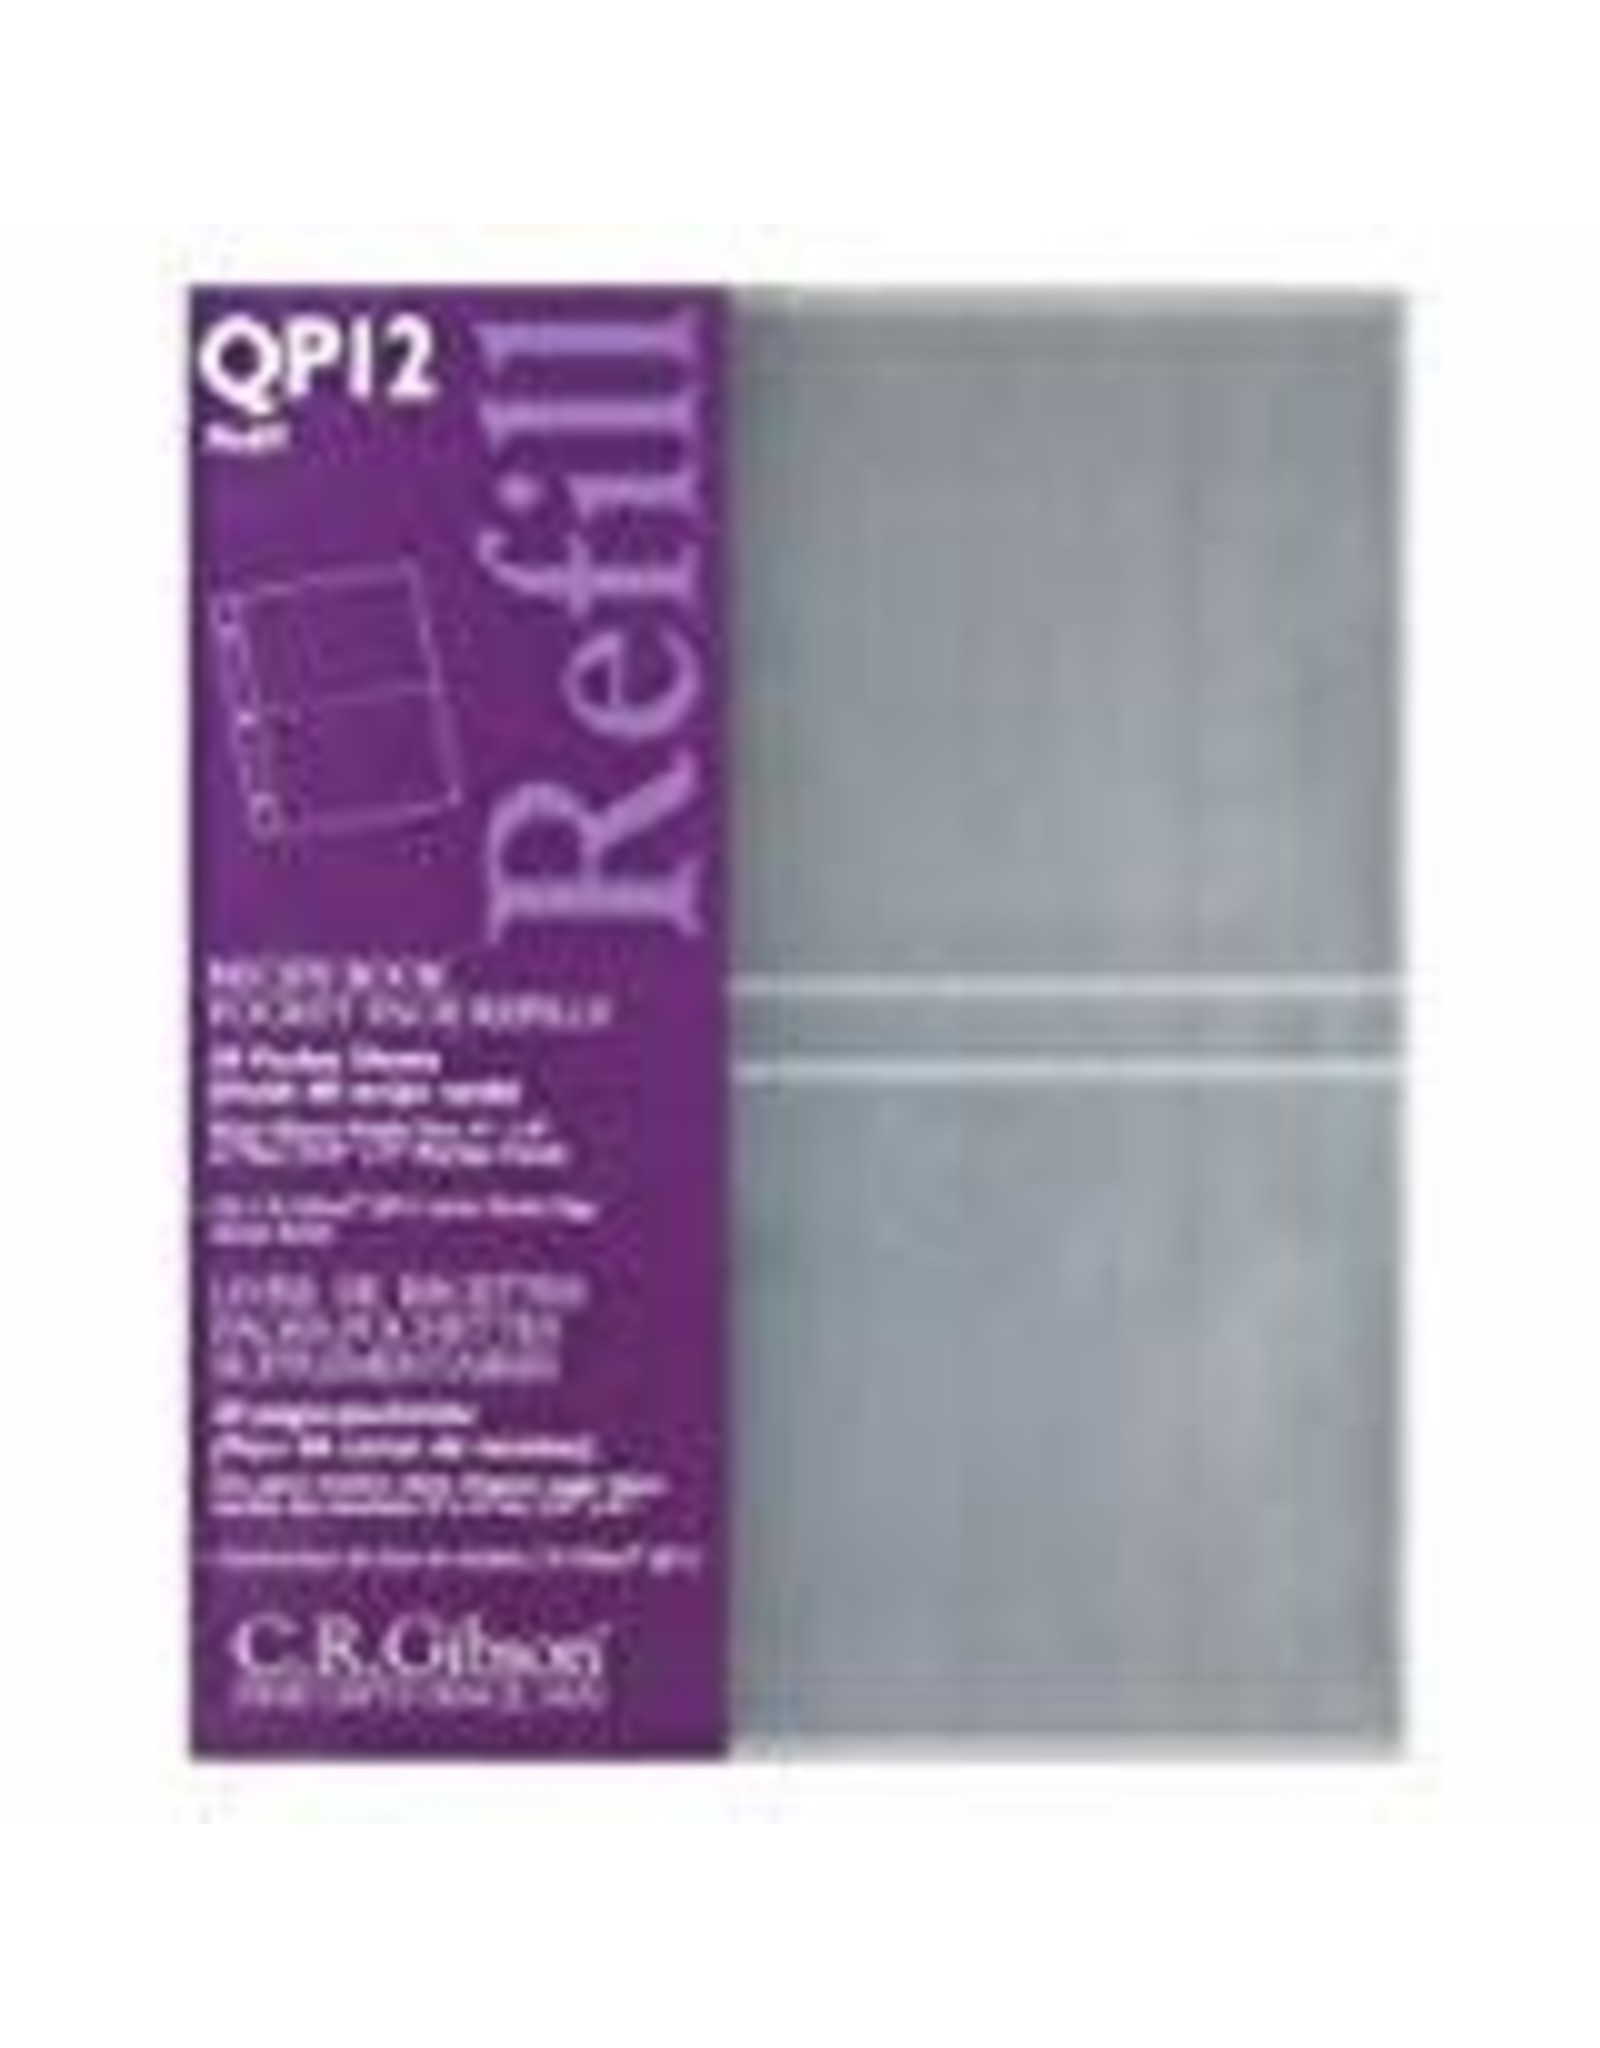 CR Gibson Transparent Pocket Page Refill